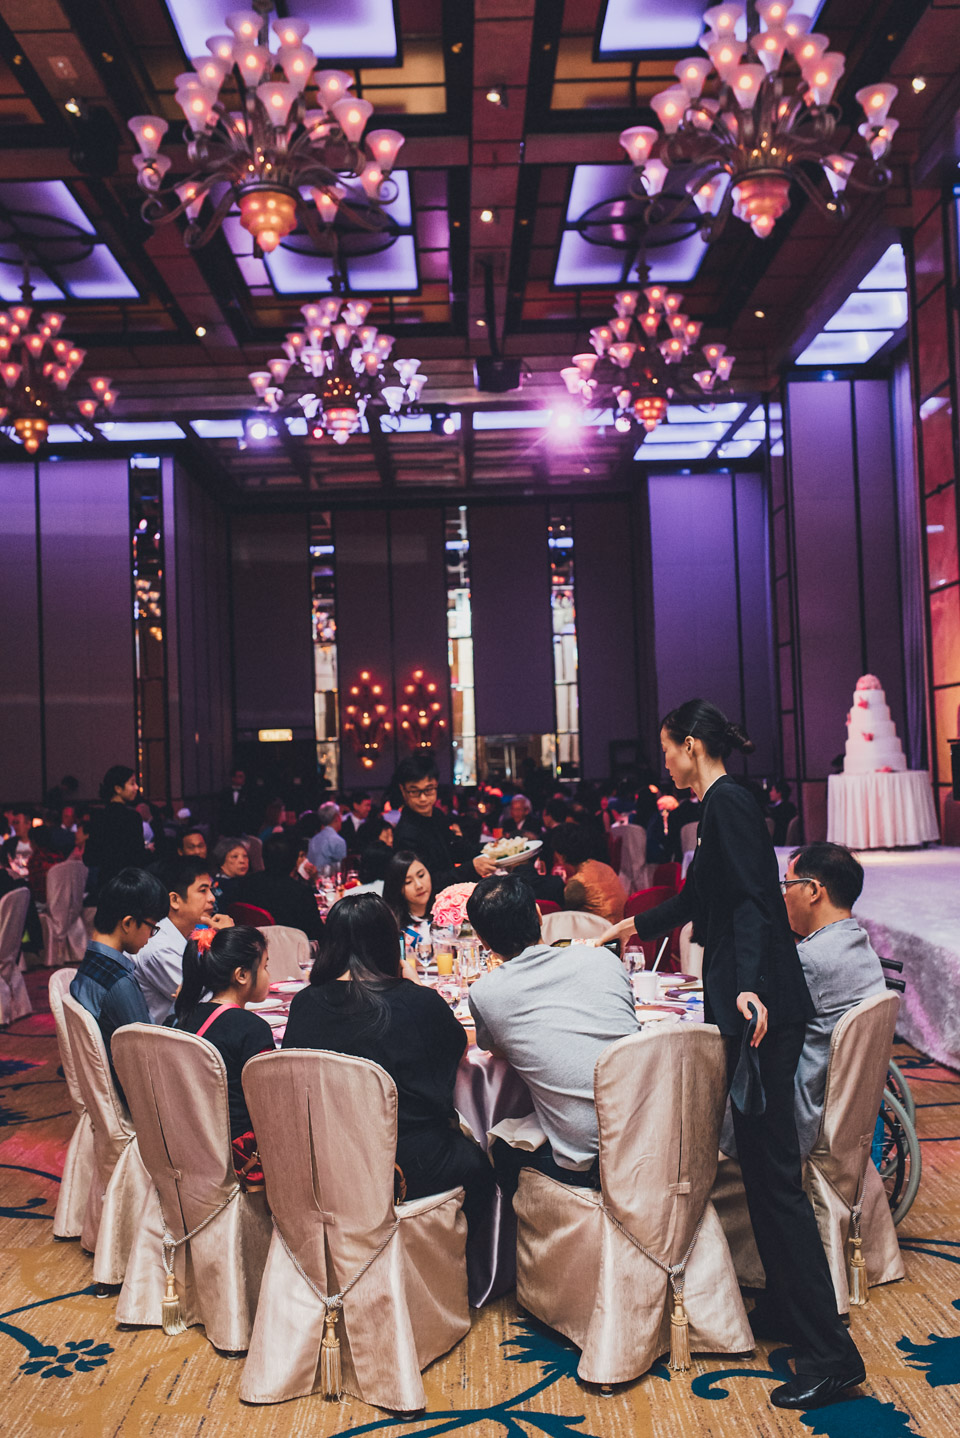 hongkong-wedding-photo-video-139